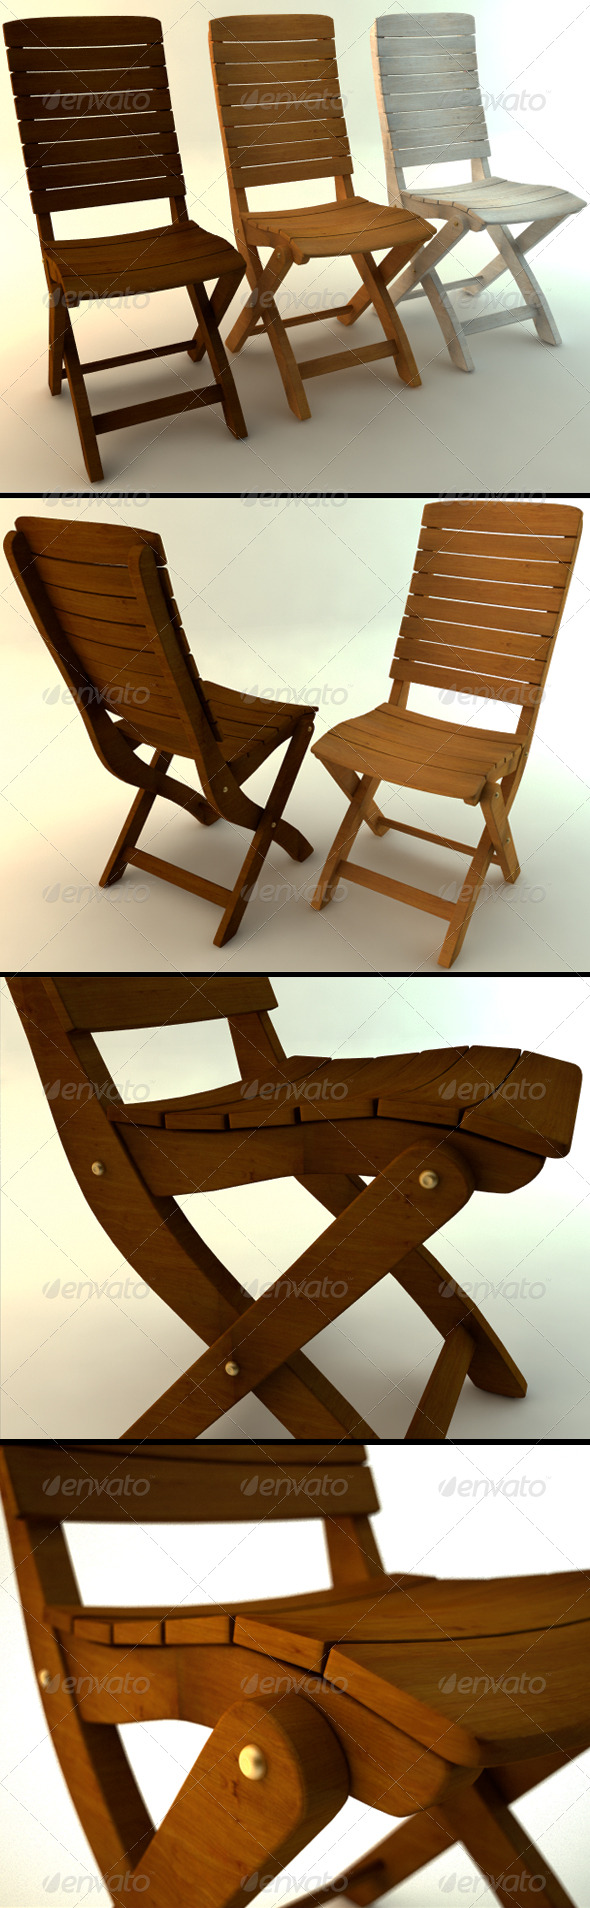 3DOcean Wooden Chair in Three Colors 165808